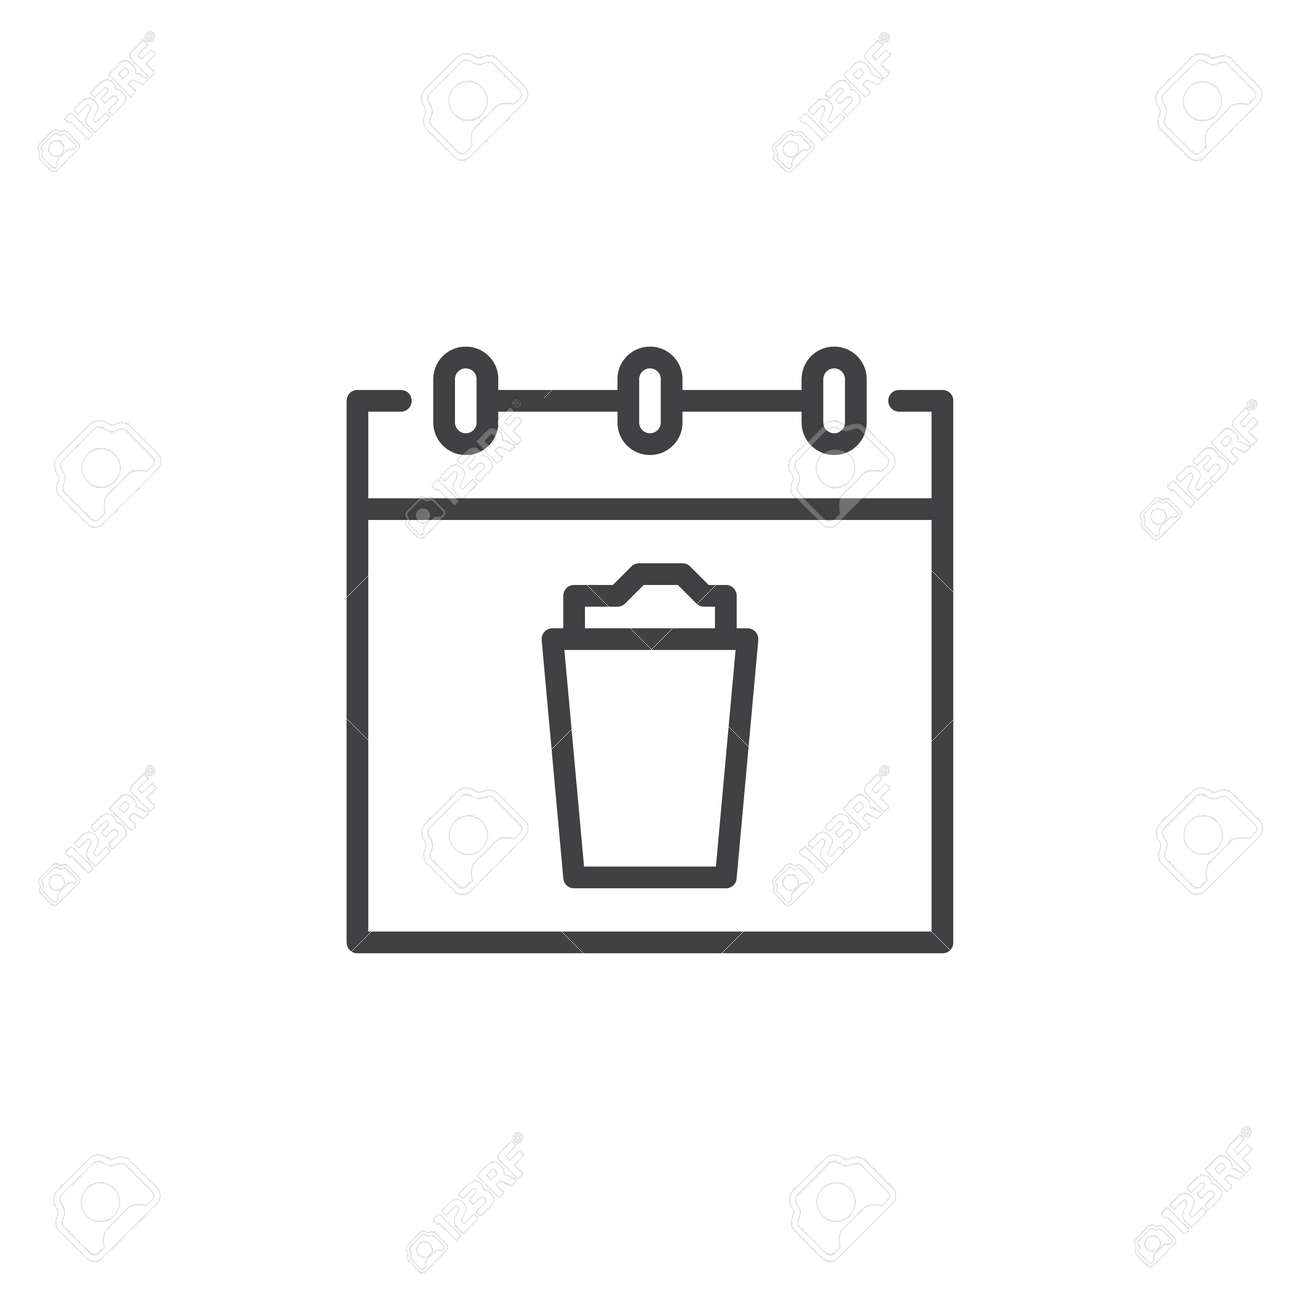 saint patrick s day calendar outline icon linear style sign